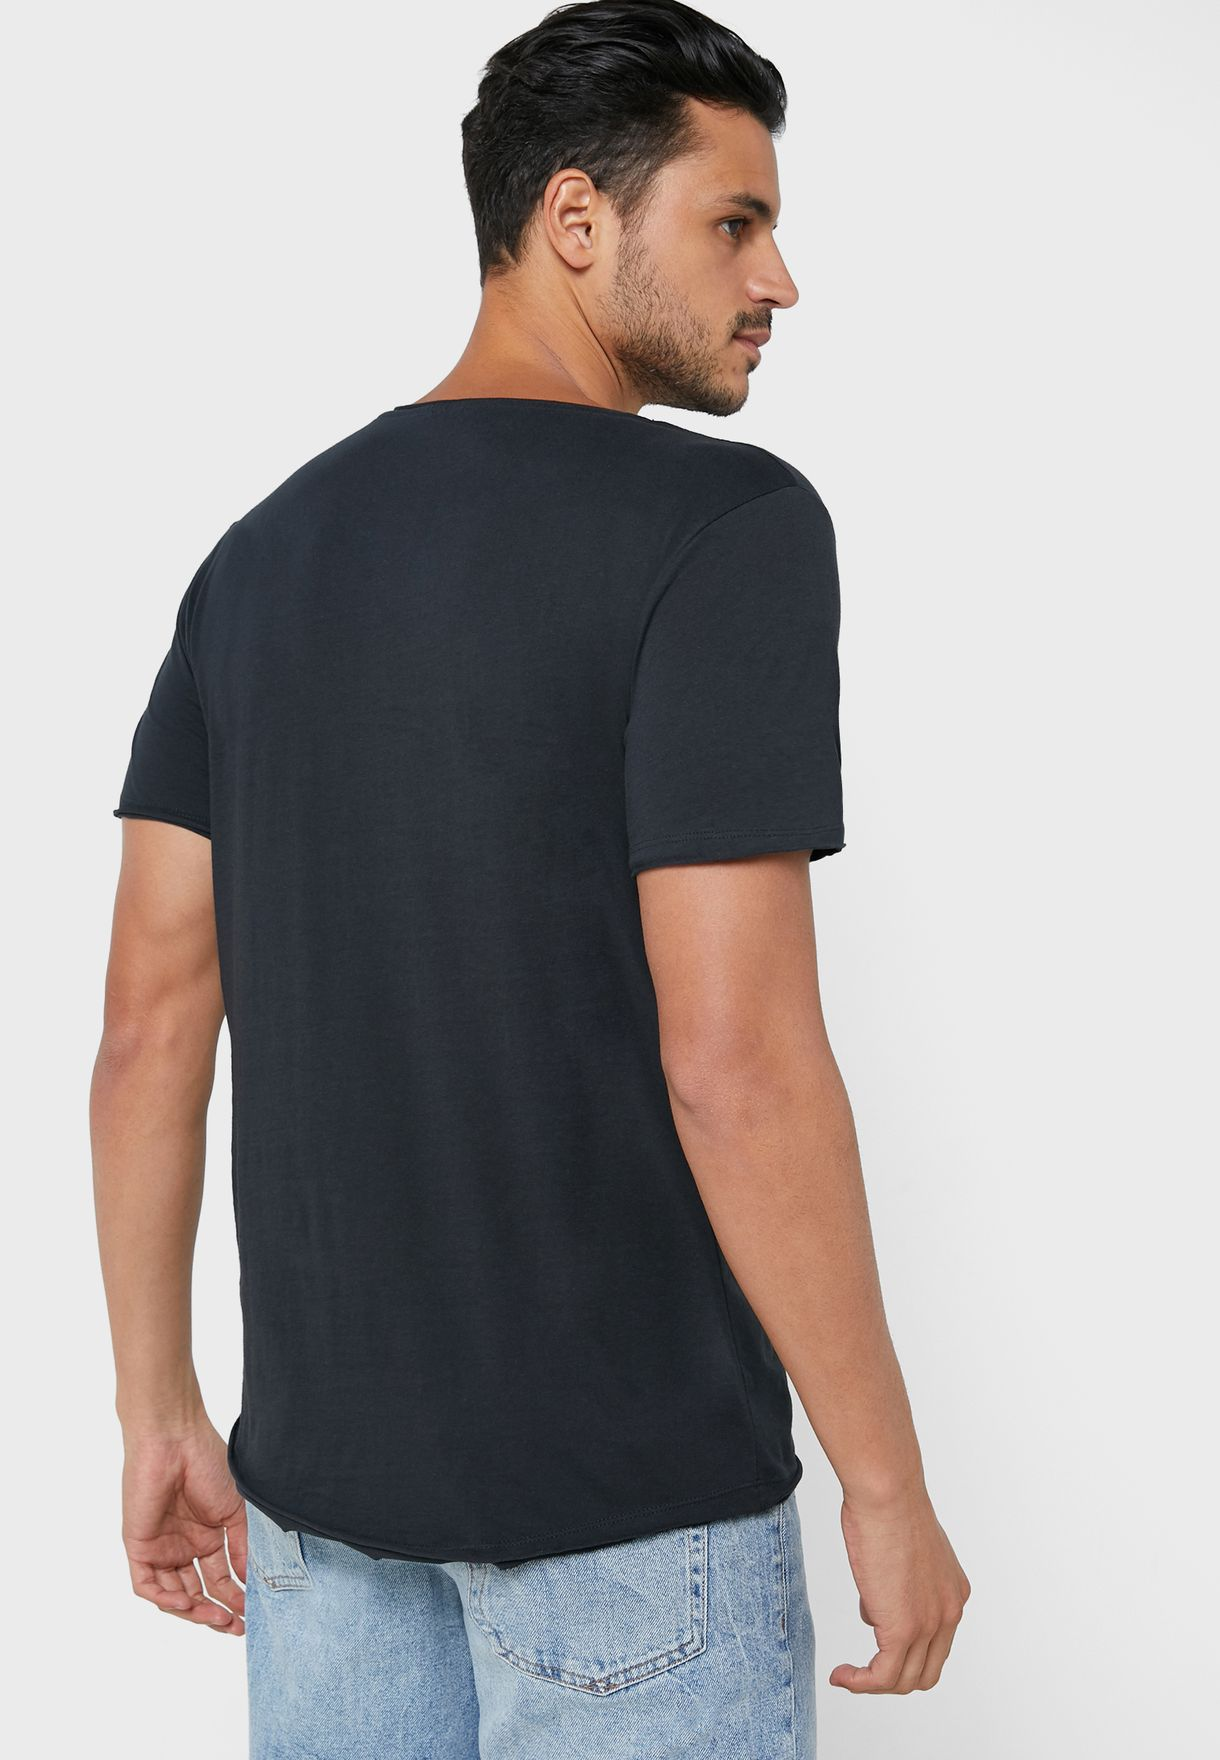 Moulder Crew Neck T-Shirt